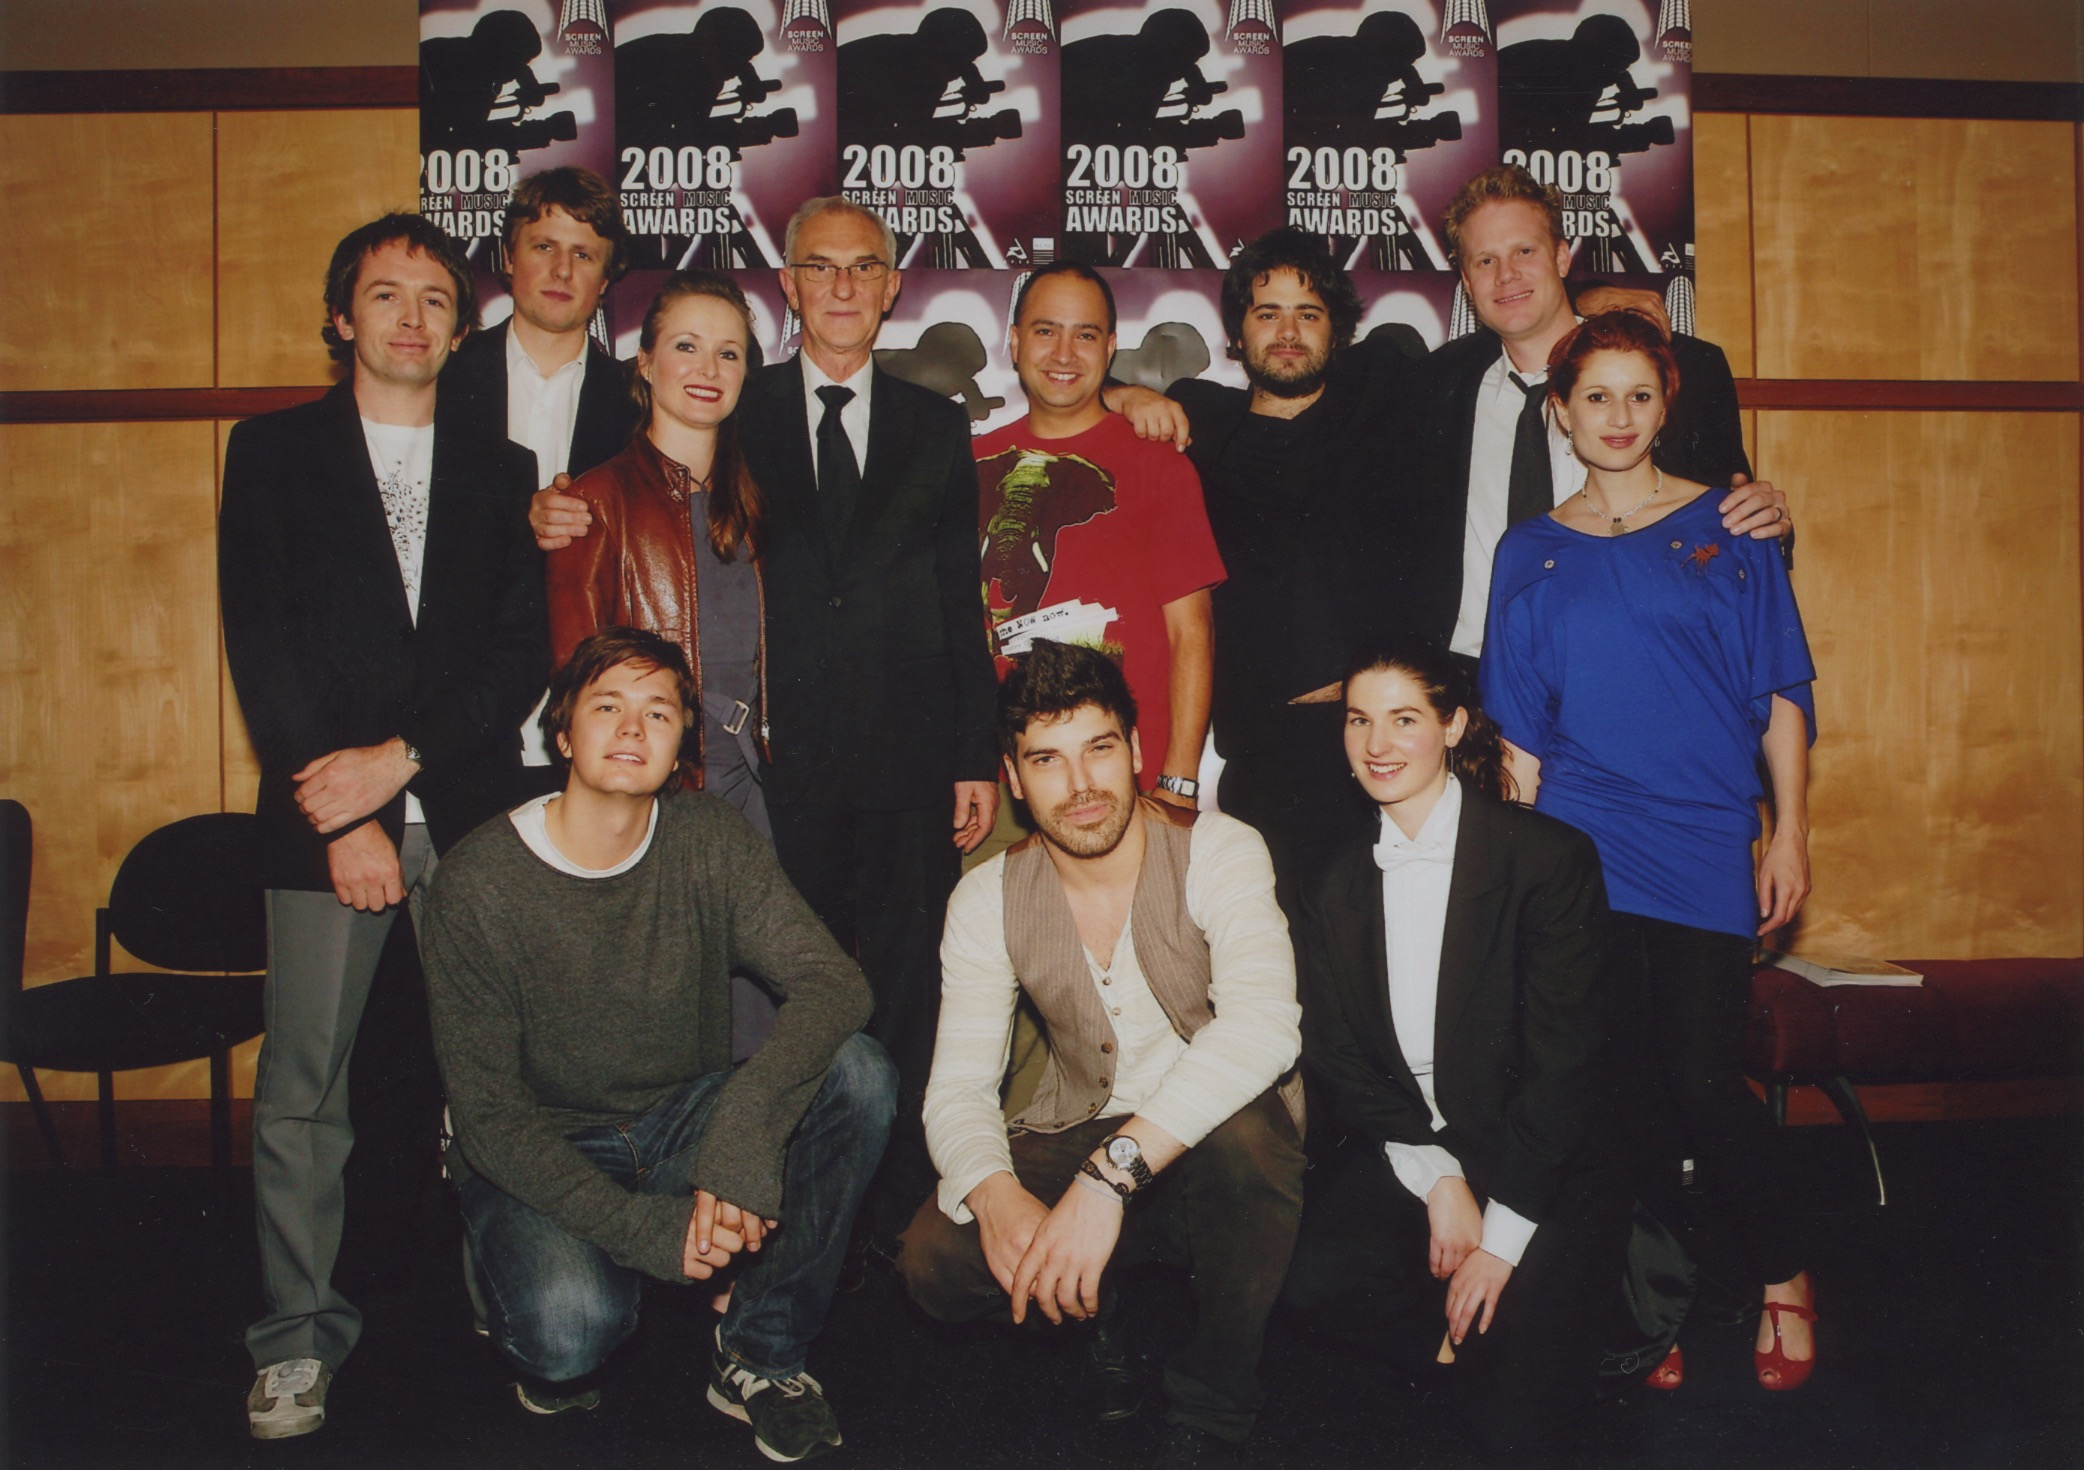 APRA Awards Band